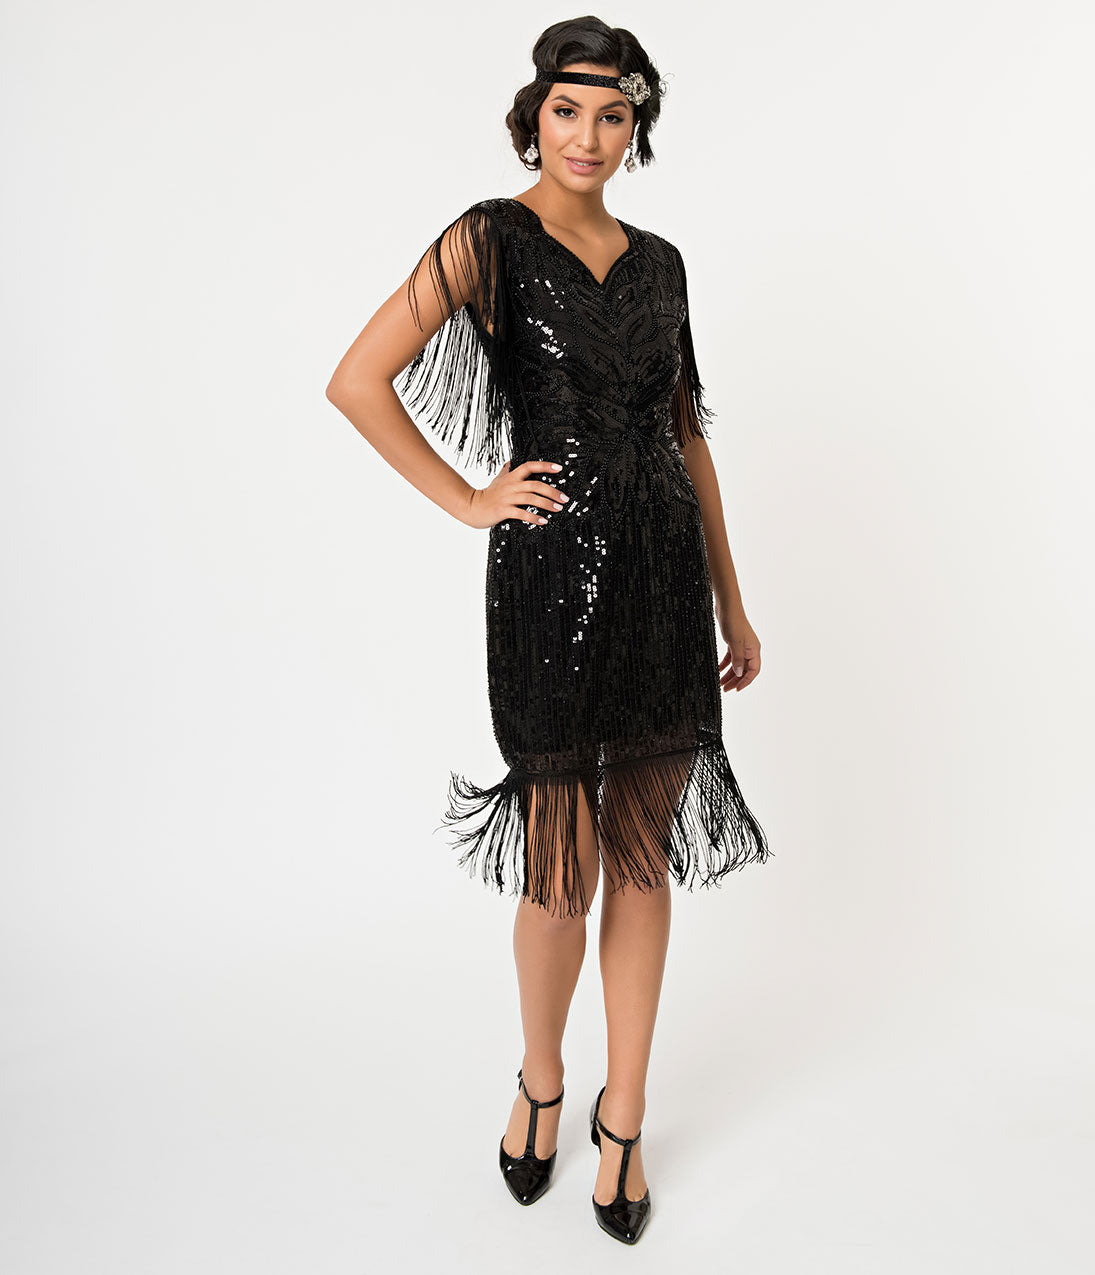 1920s Evening Dresses & Formal Gowns Banned Black Sequin  Fringe Great Gatsby Cocktail Flapper Dress $98.00 AT vintagedancer.com